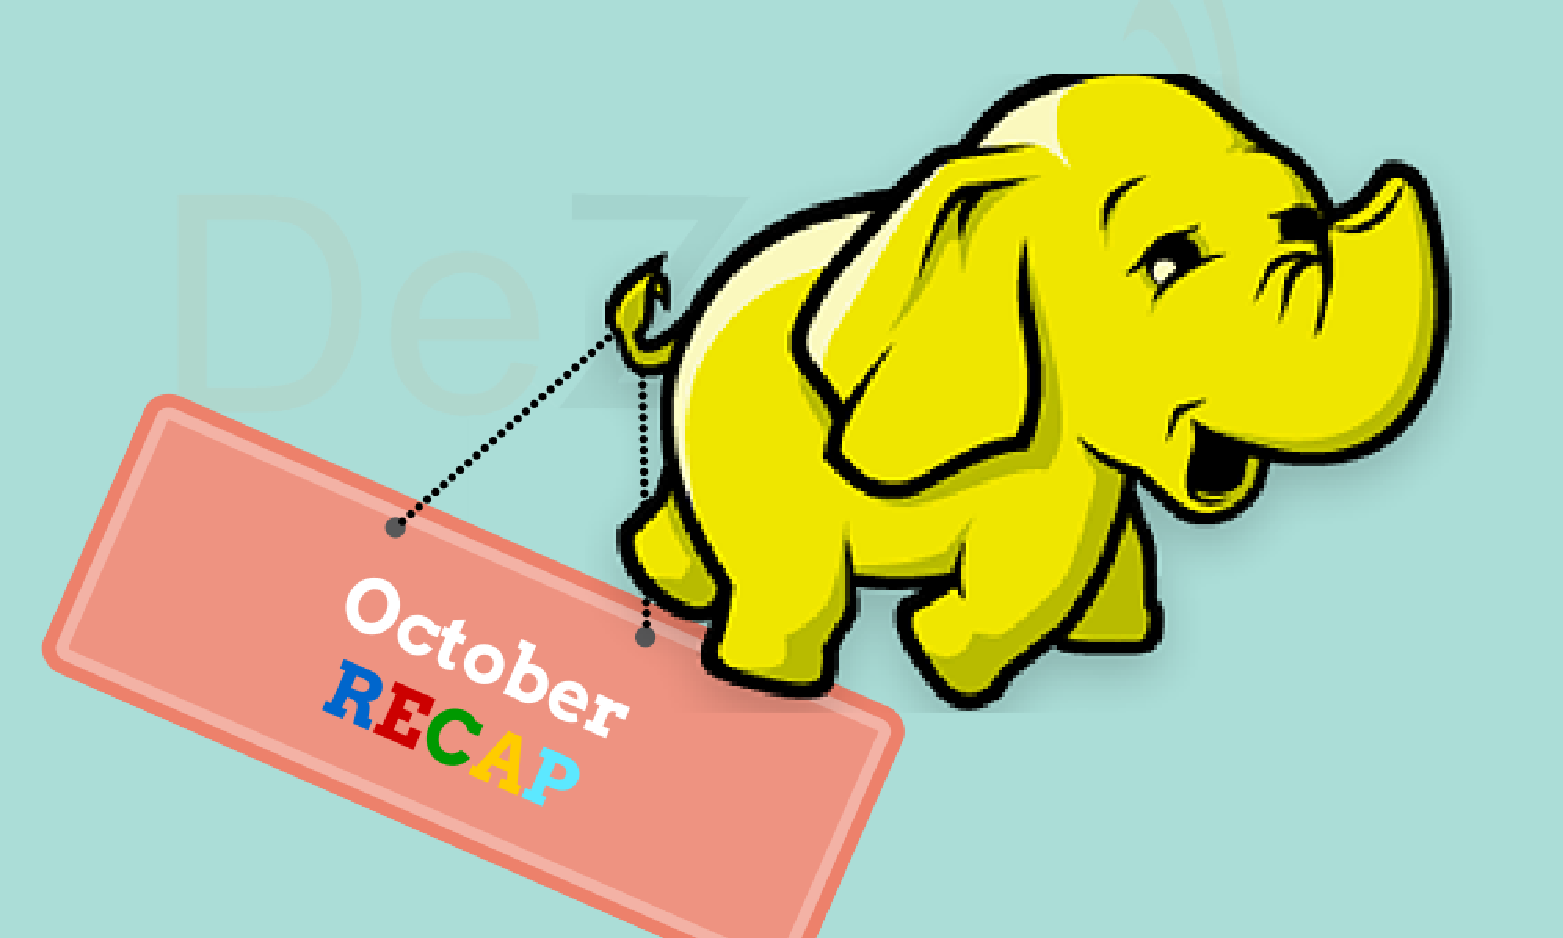 Hadoop News for October